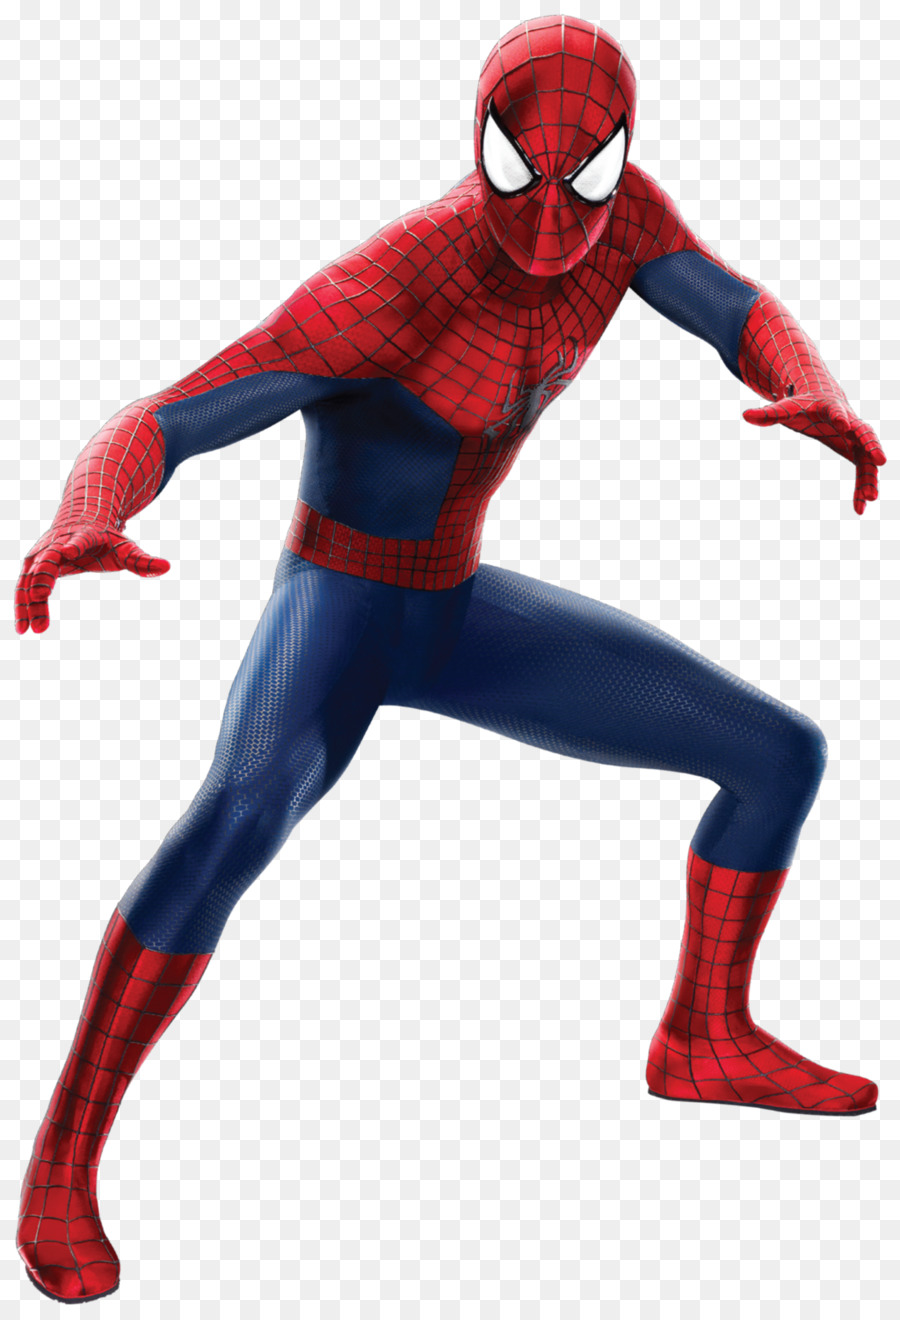 spider man by alexiscabo1 clipart Spider-Man: Shattered Dimensions The Amazing Spider-Man